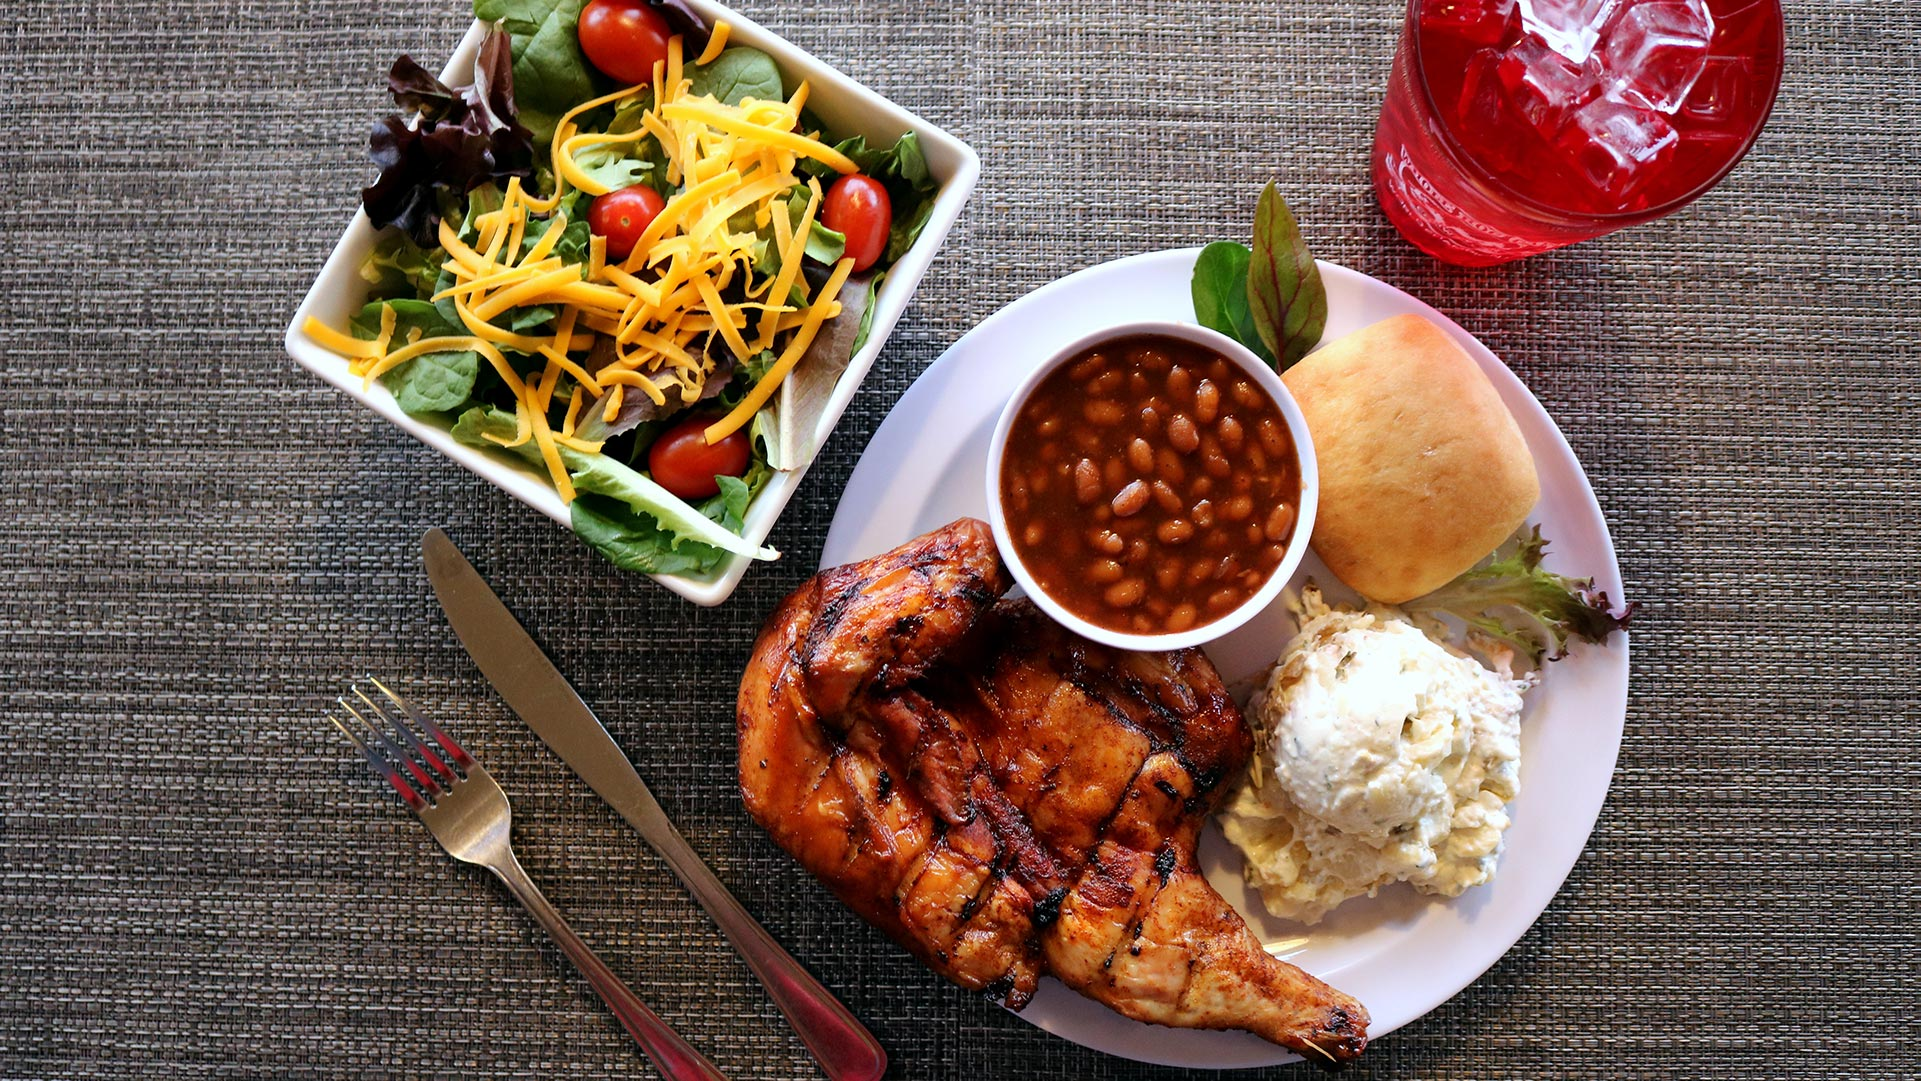 Whole Hog Cafe BBQ chicken plate and salad